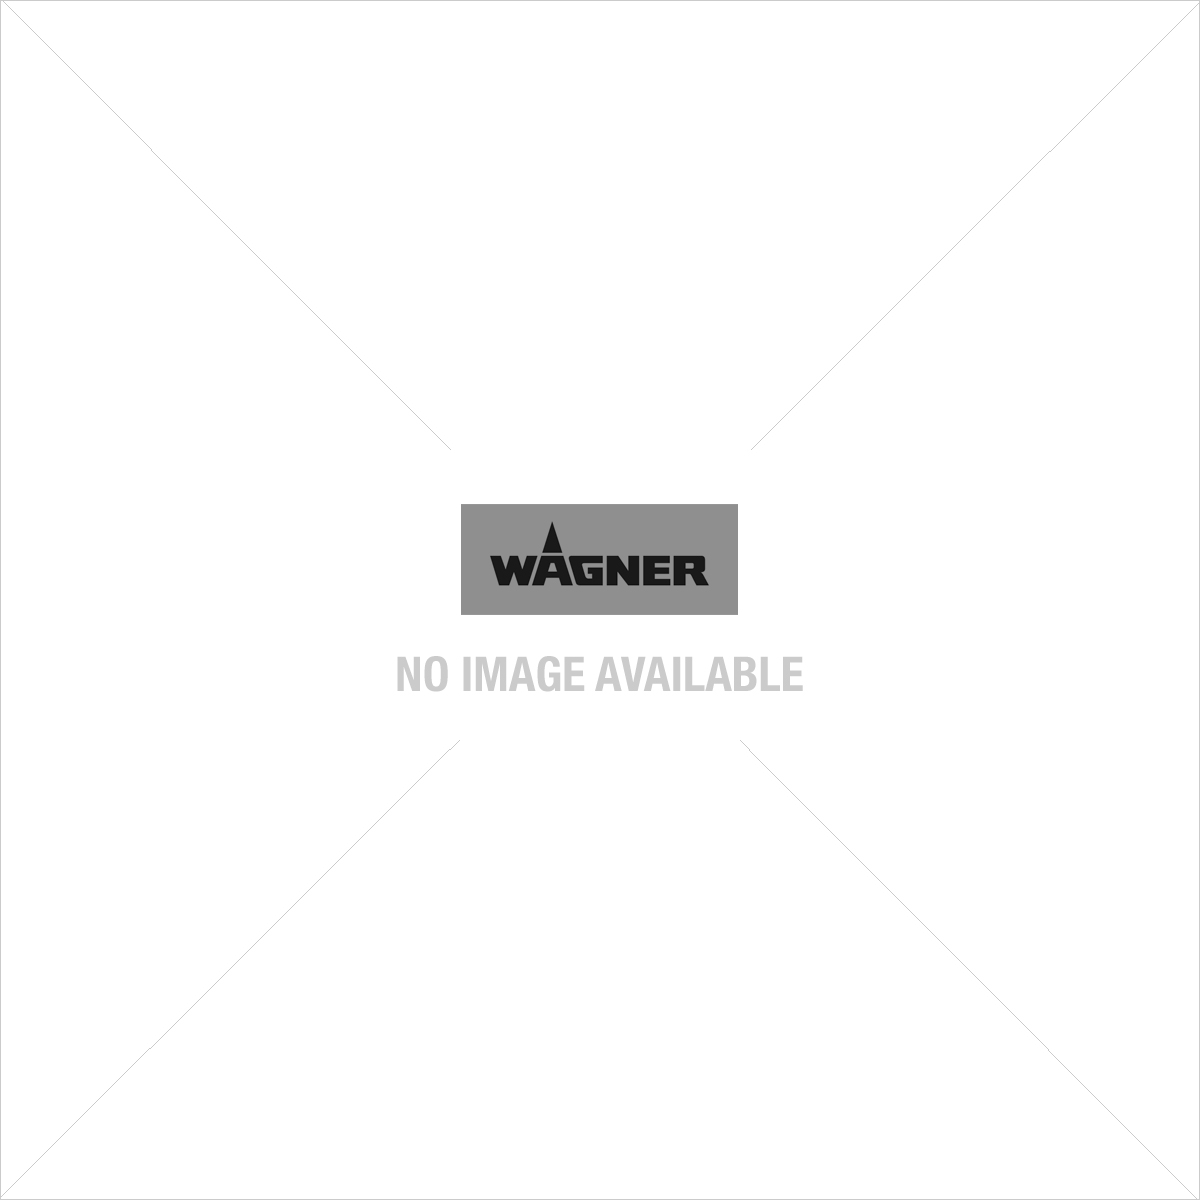 Wagner Flexible extension attachment